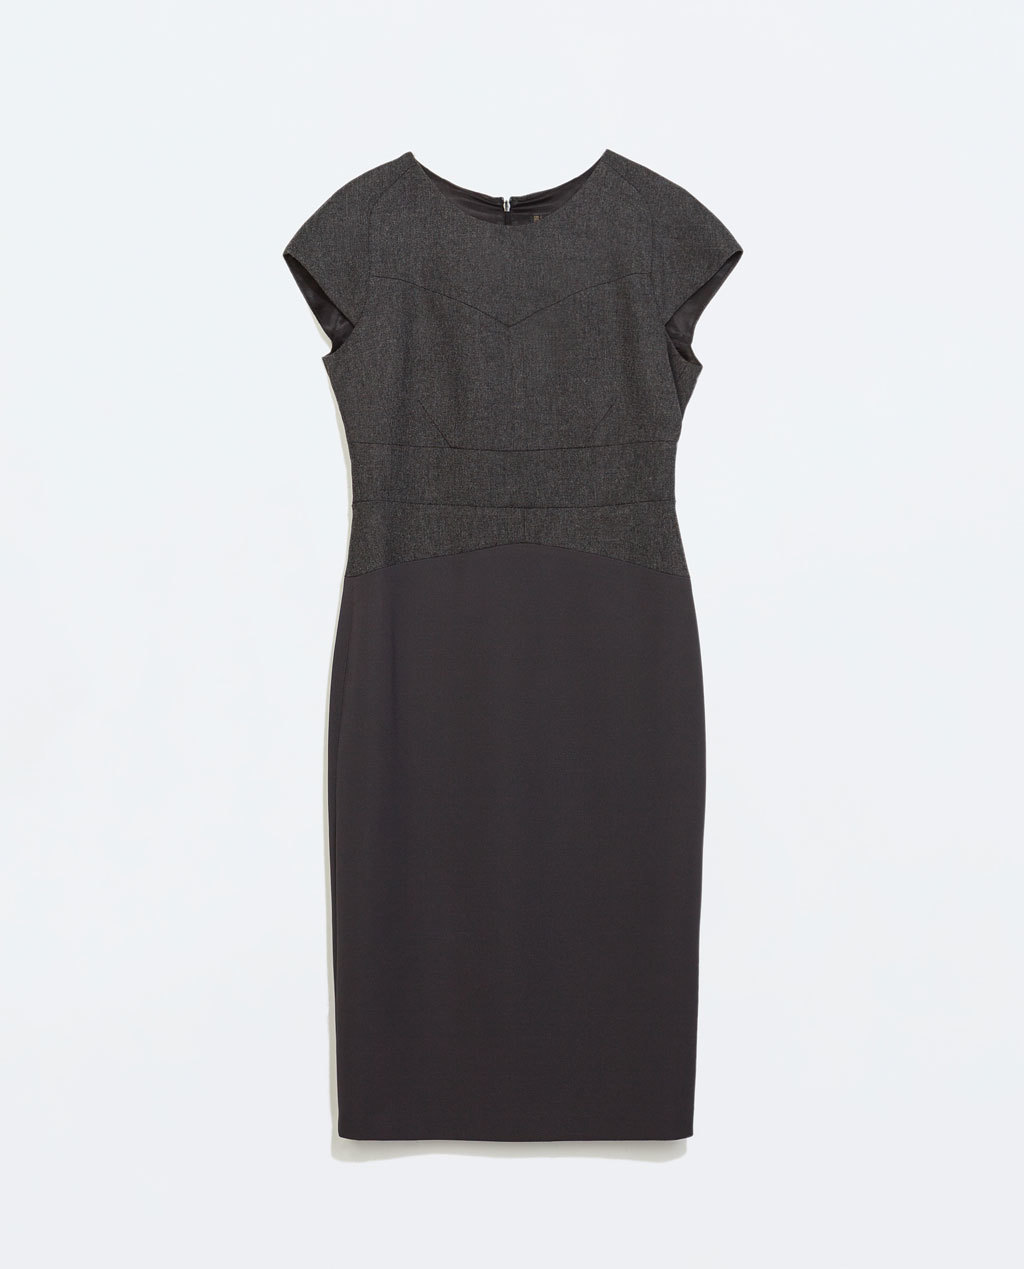 Straight Dress With Seams - style: shift; sleeve style: capped; fit: tailored/fitted; pattern: plain; predominant colour: charcoal; occasions: evening, work, creative work; length: on the knee; fibres: polyester/polyamide - mix; neckline: crew; sleeve length: short sleeve; texture group: woven light midweight; season: a/w 2014; wardrobe: investment